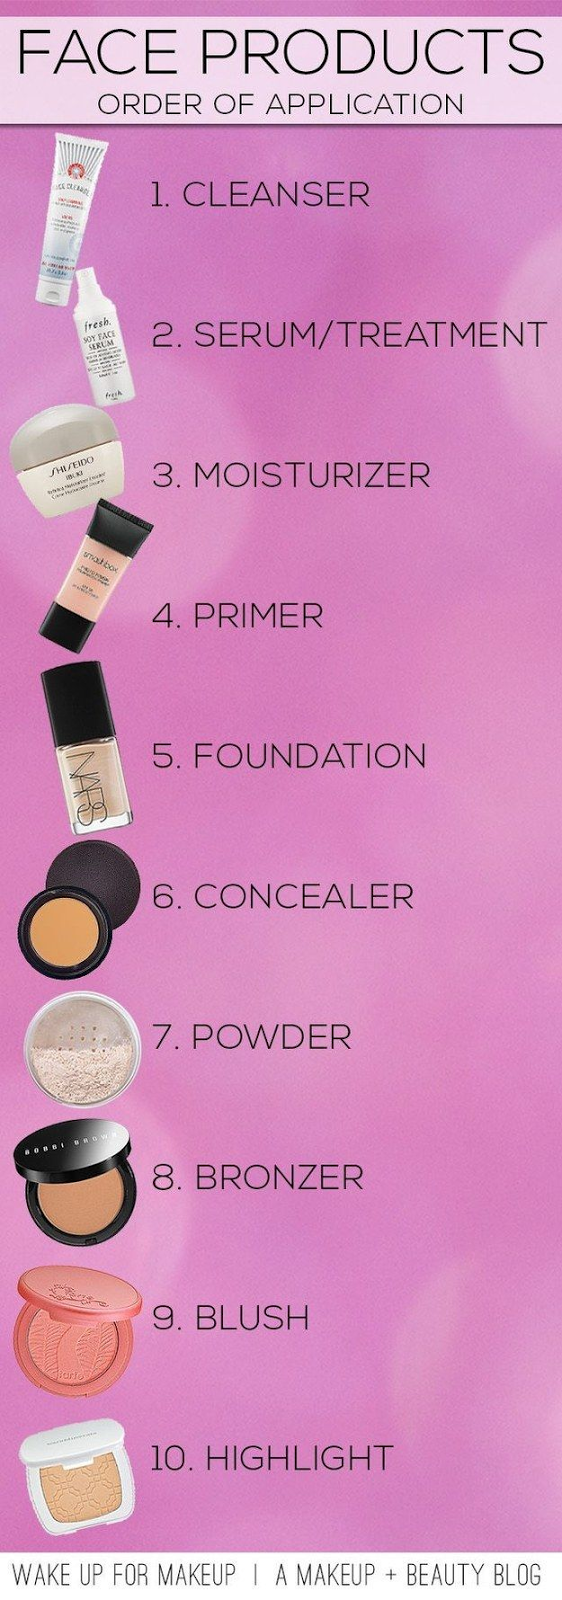 Face Products Order of Application